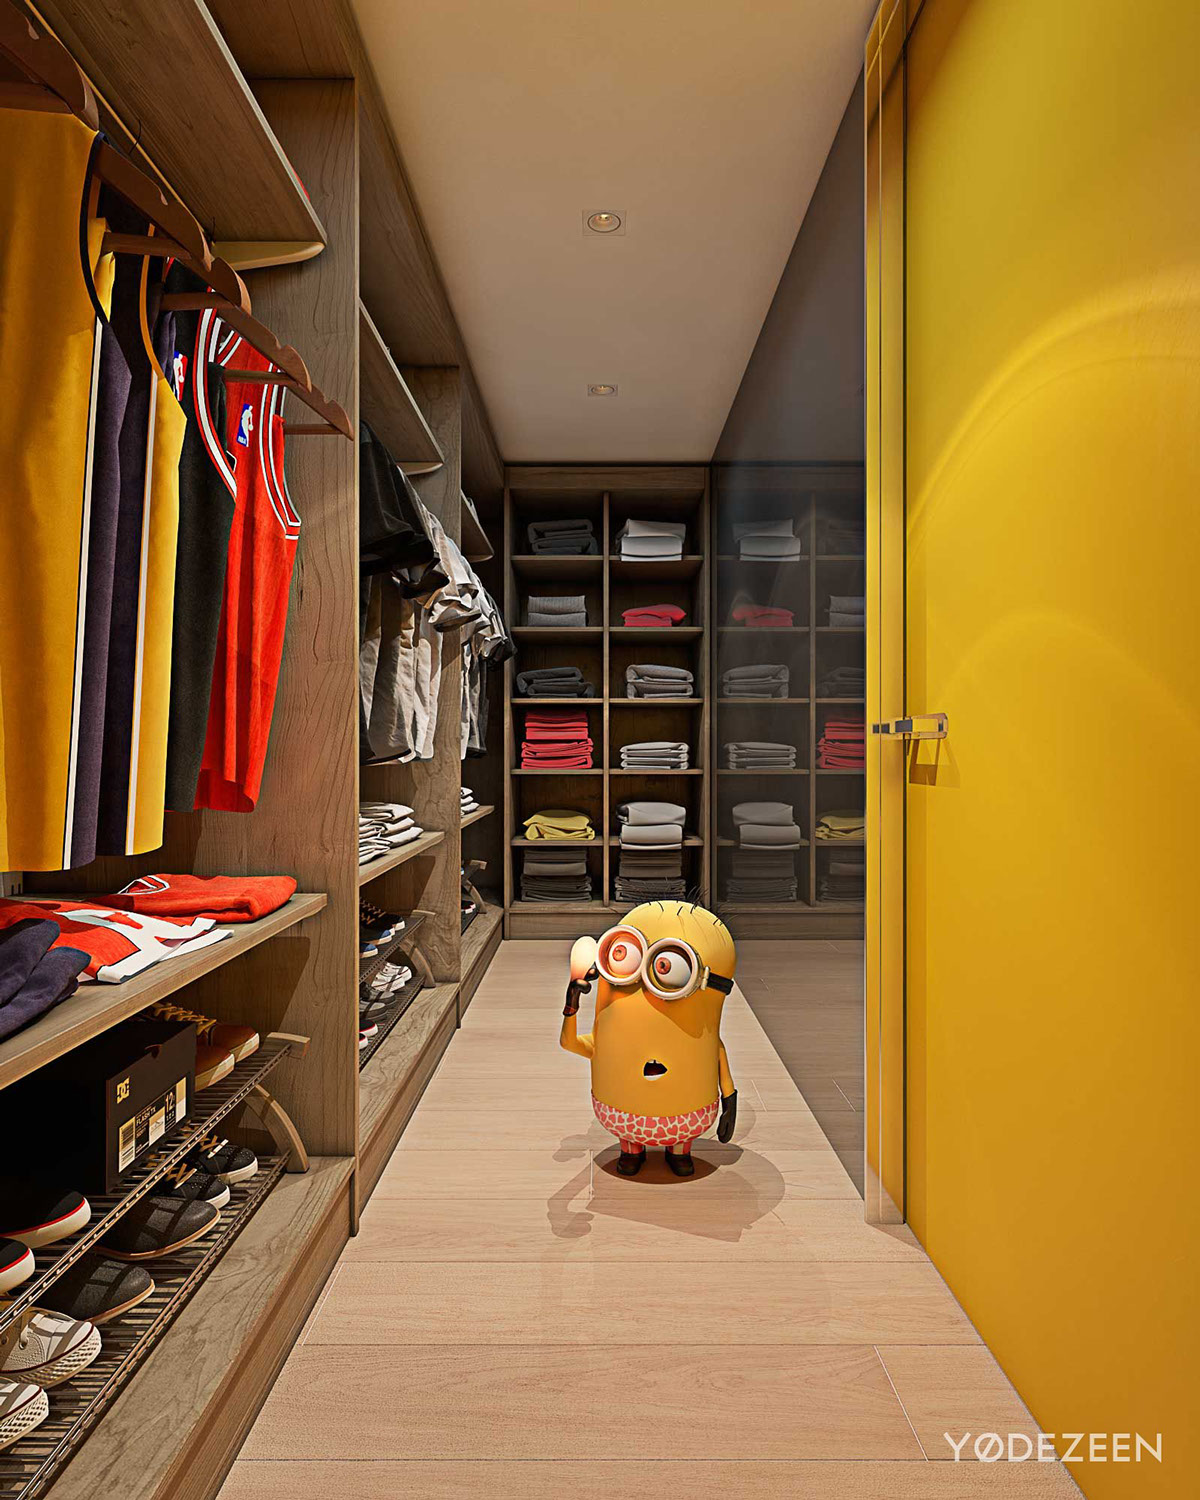 Minion Closet Design - A kids friendly apartment design with lots of playful features